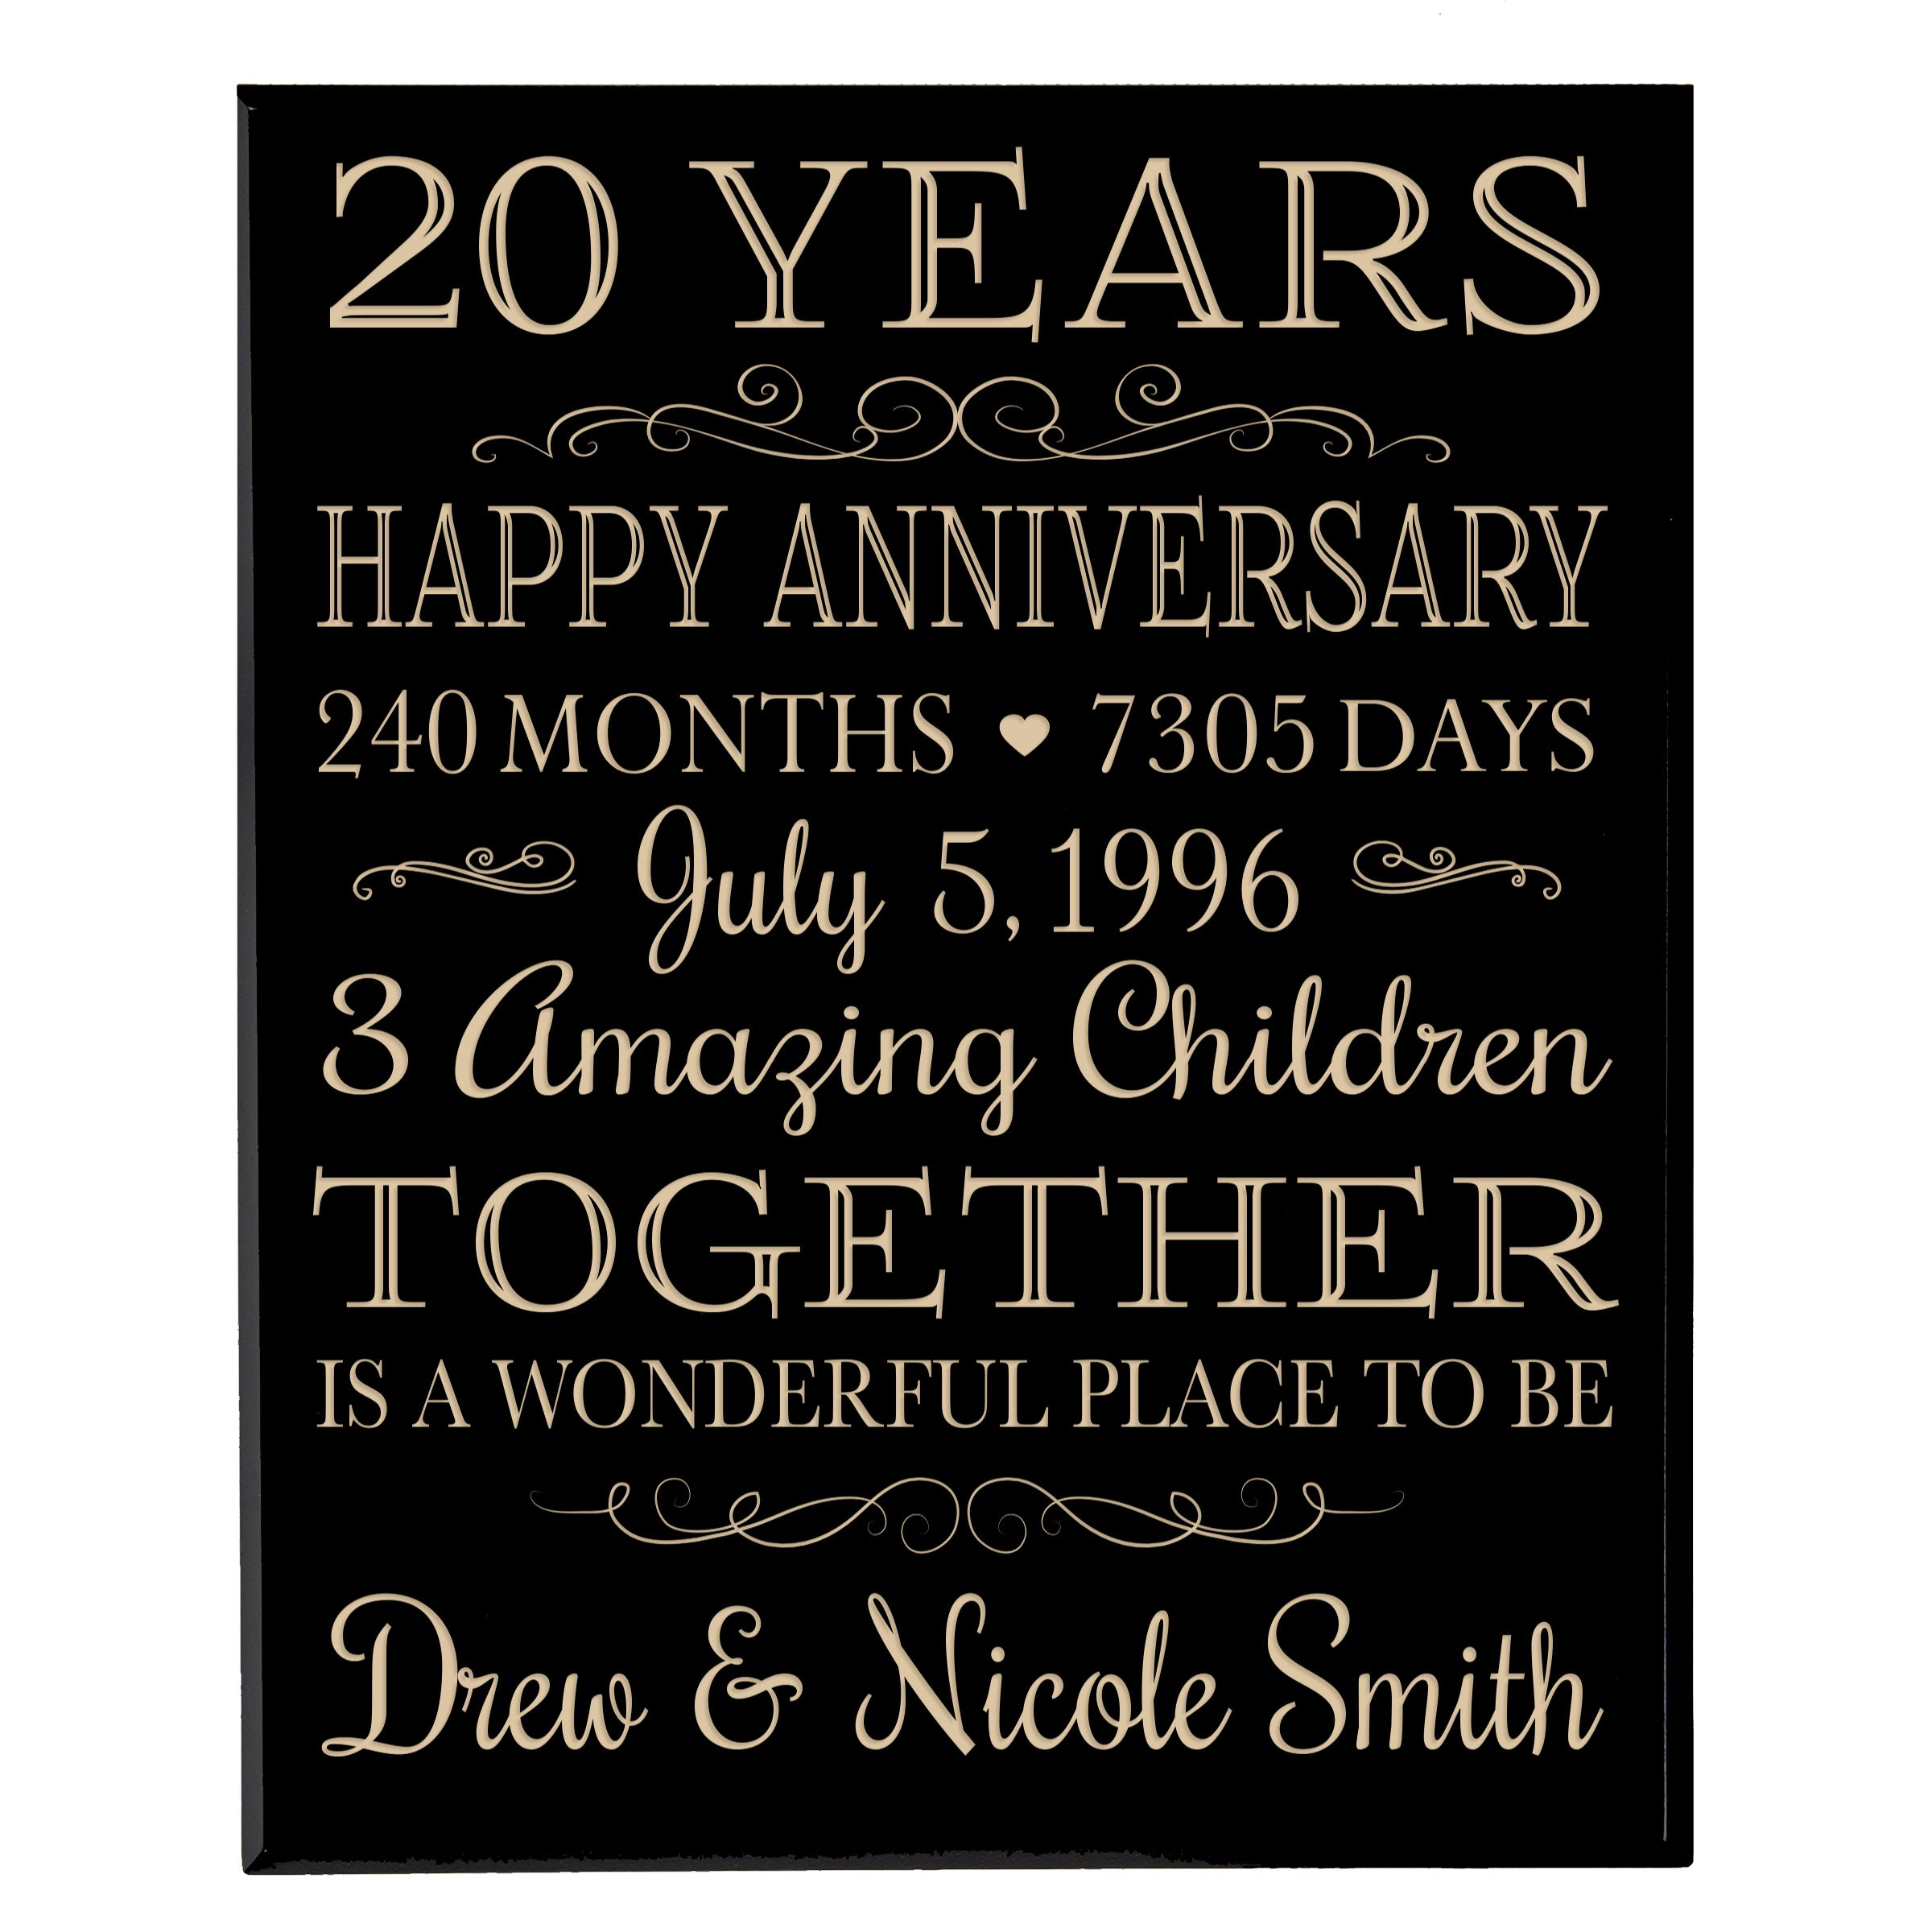 Personalized 20th Anniversary Gifts ideas for Couple, happy 20 year anniversary Gift for Her and